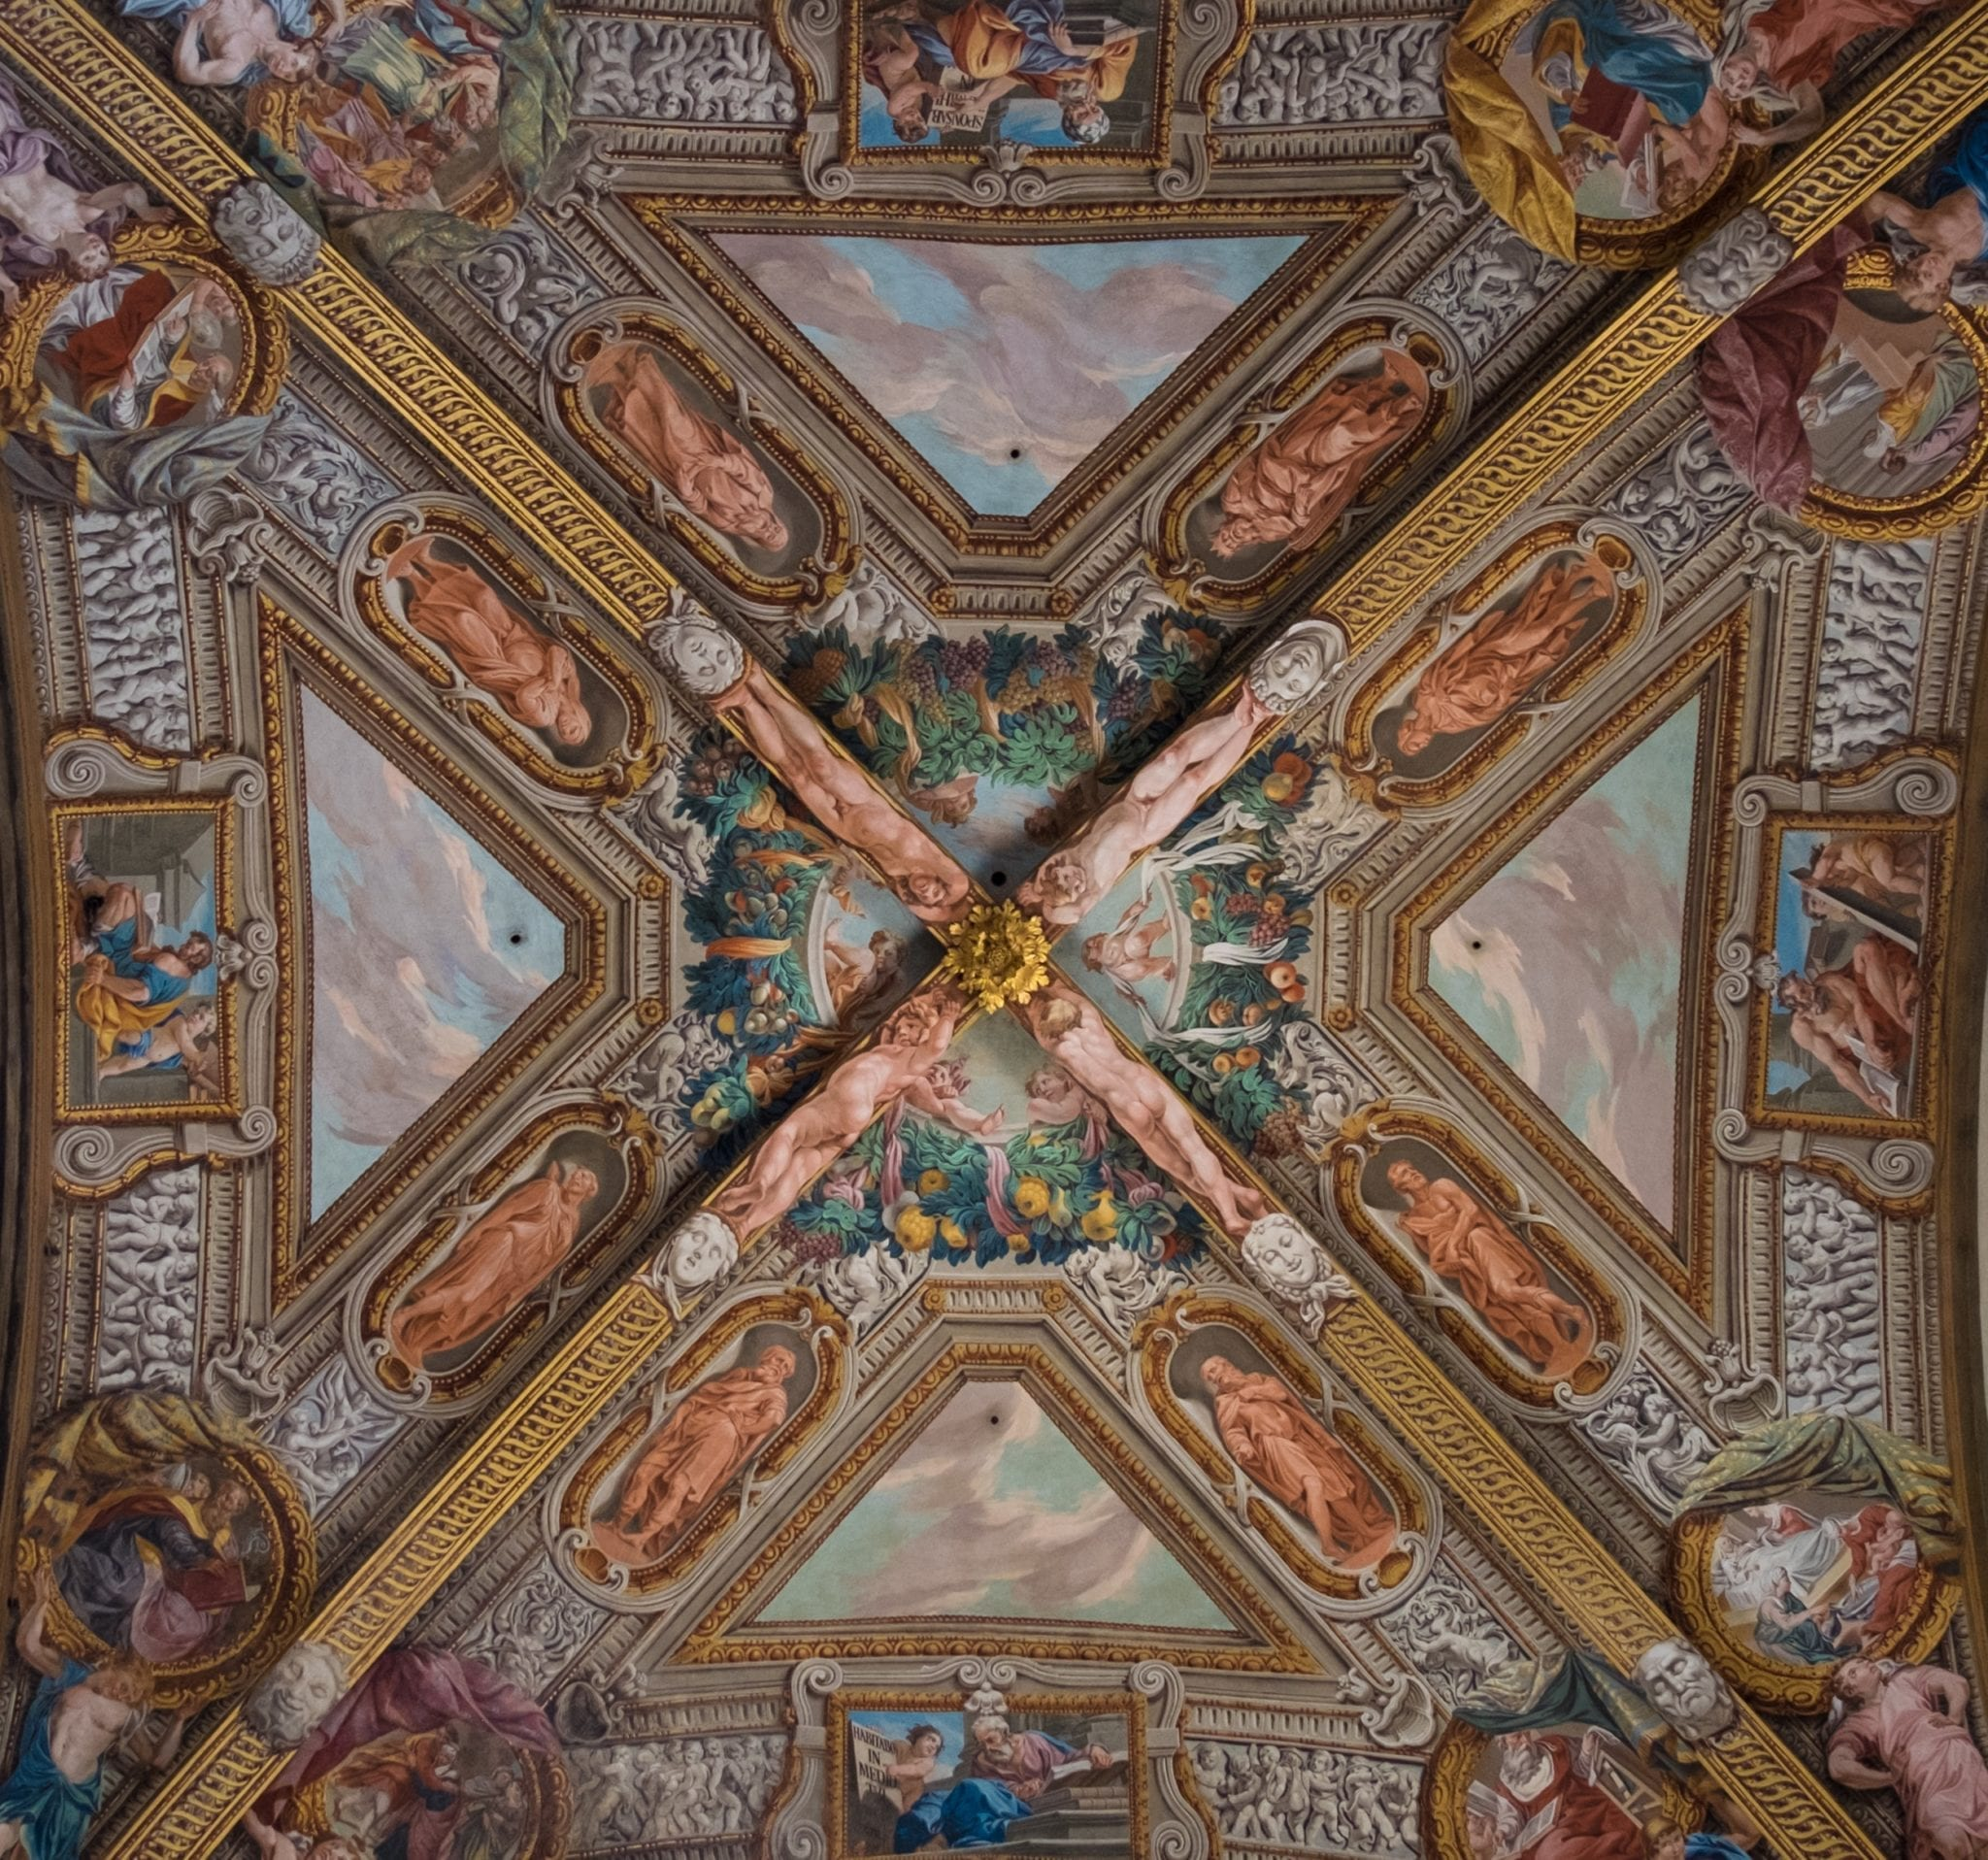 A square image of Parma's cathedral ceiling divided into sections shaped like an X, paintings on the ceiling.